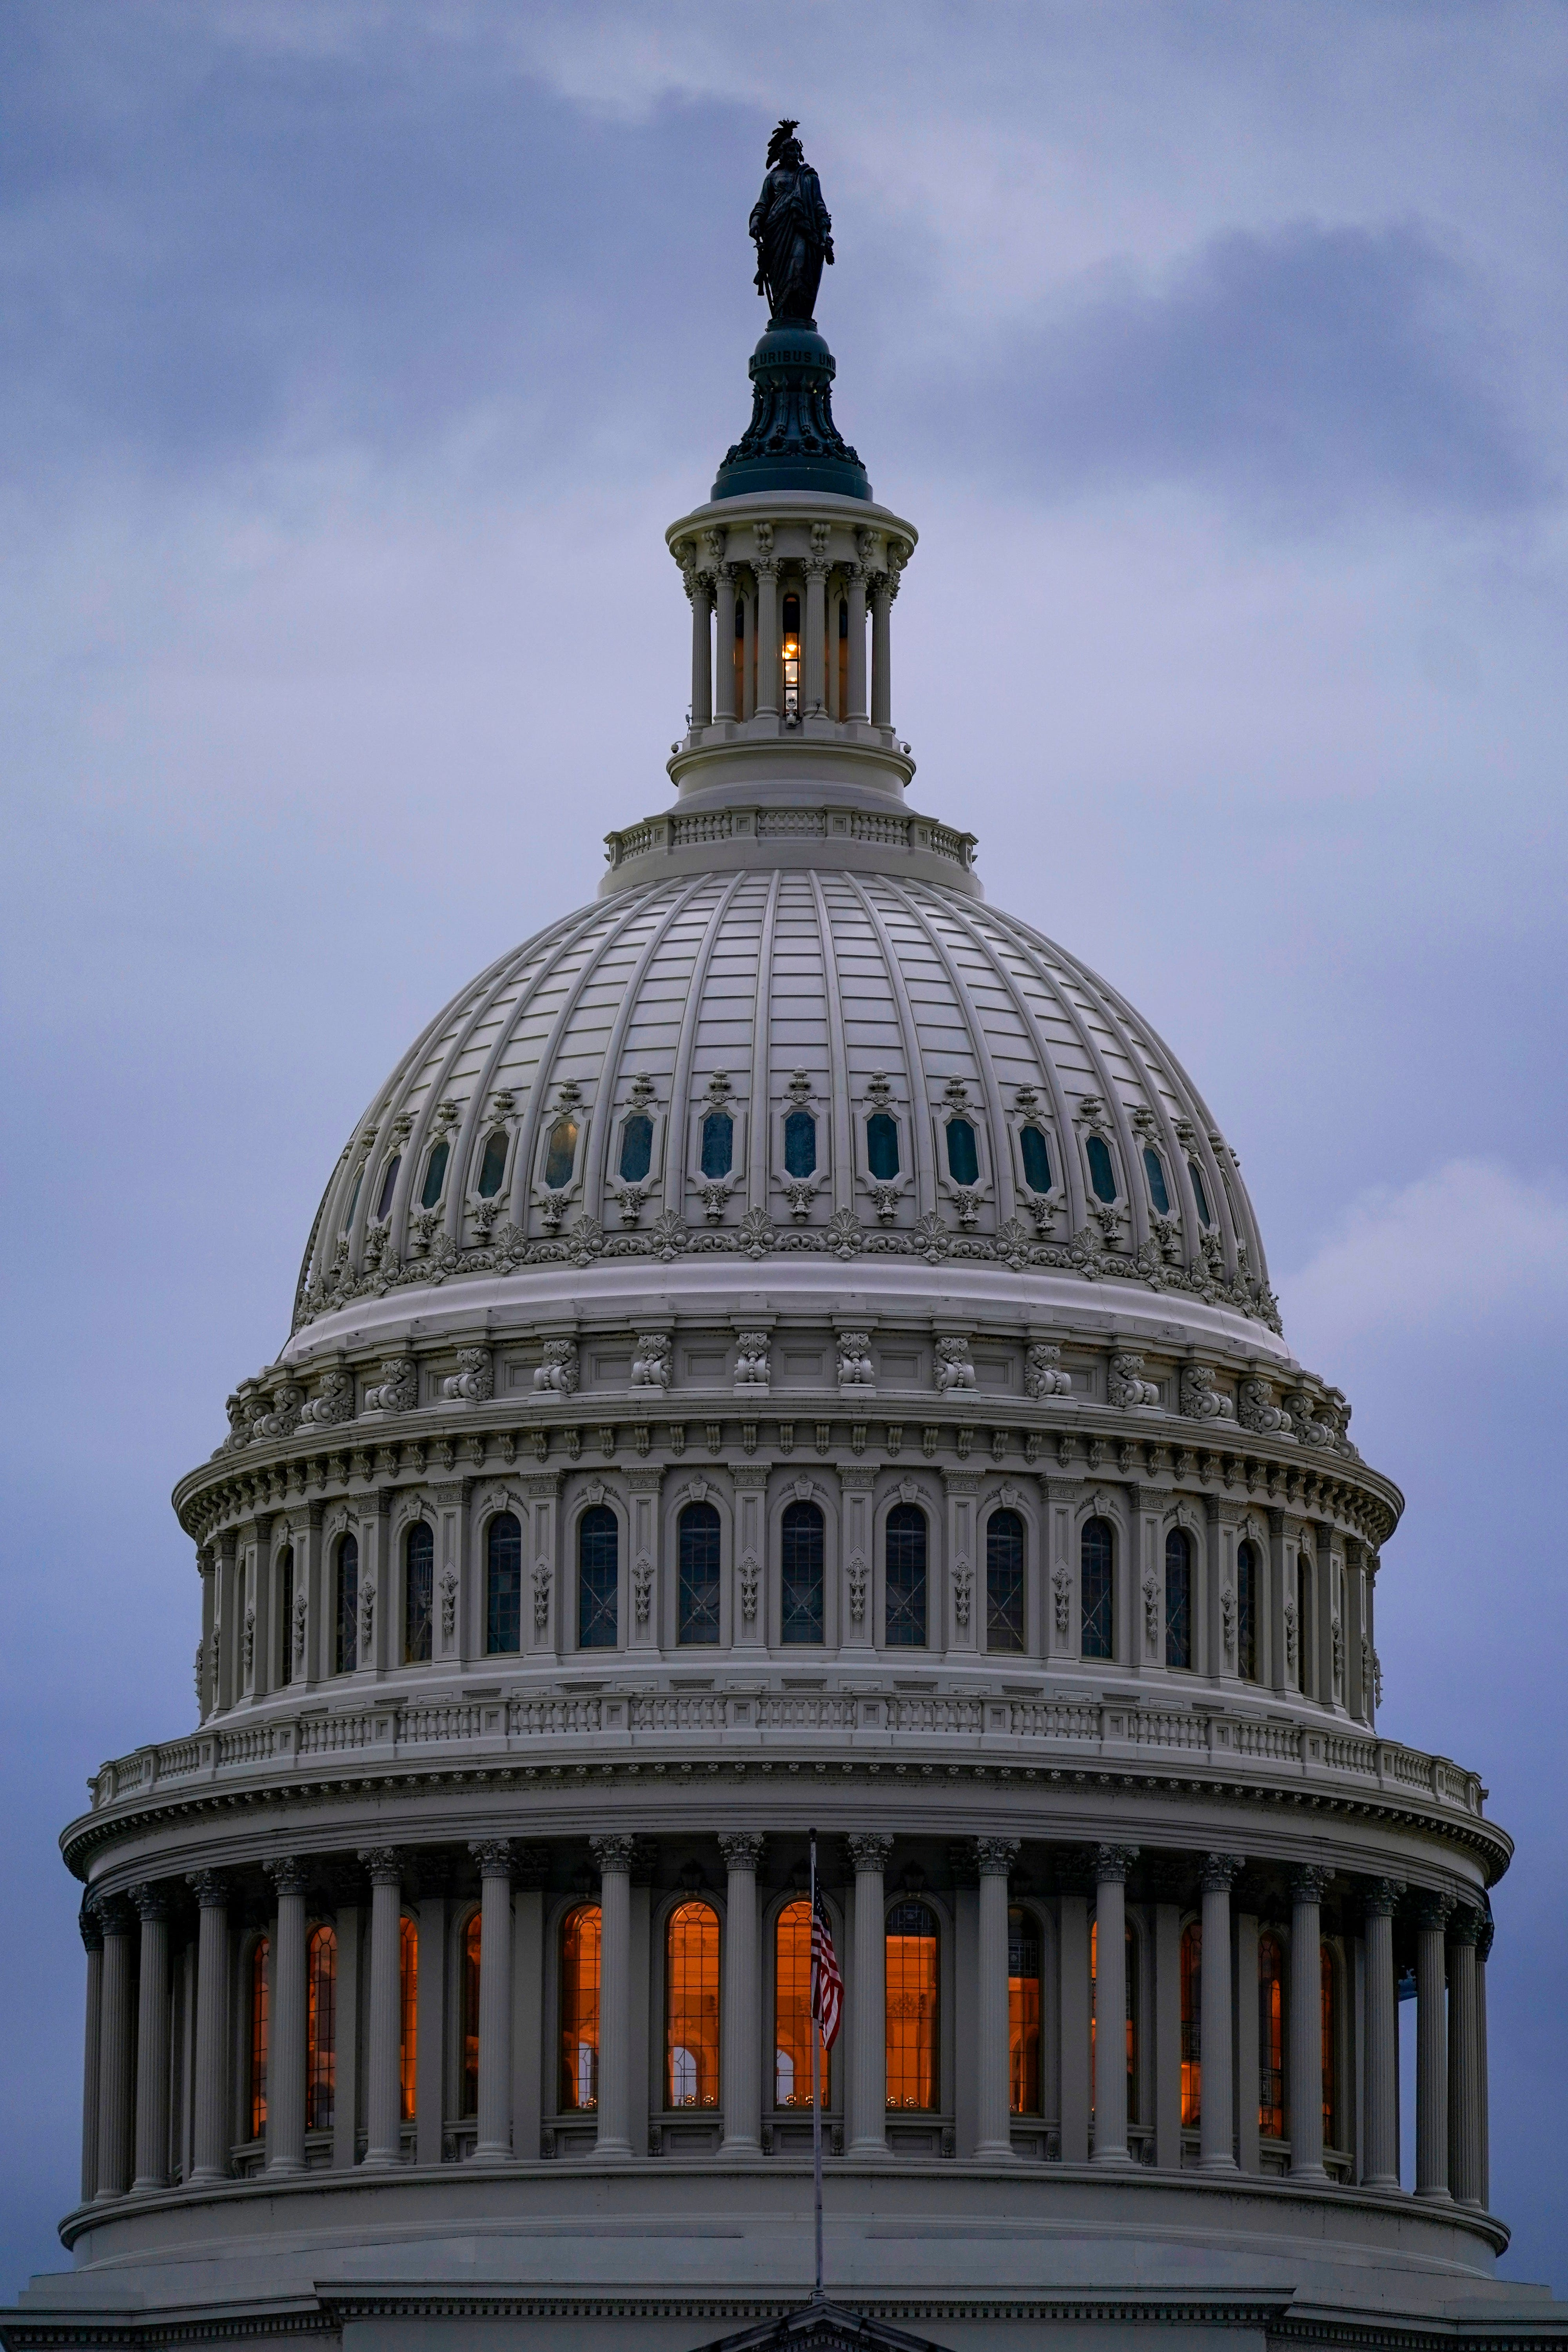 Debt ceiling bill, William Shatner blasts into space, Jon Gruden replaced: 5 things to know Wednesday